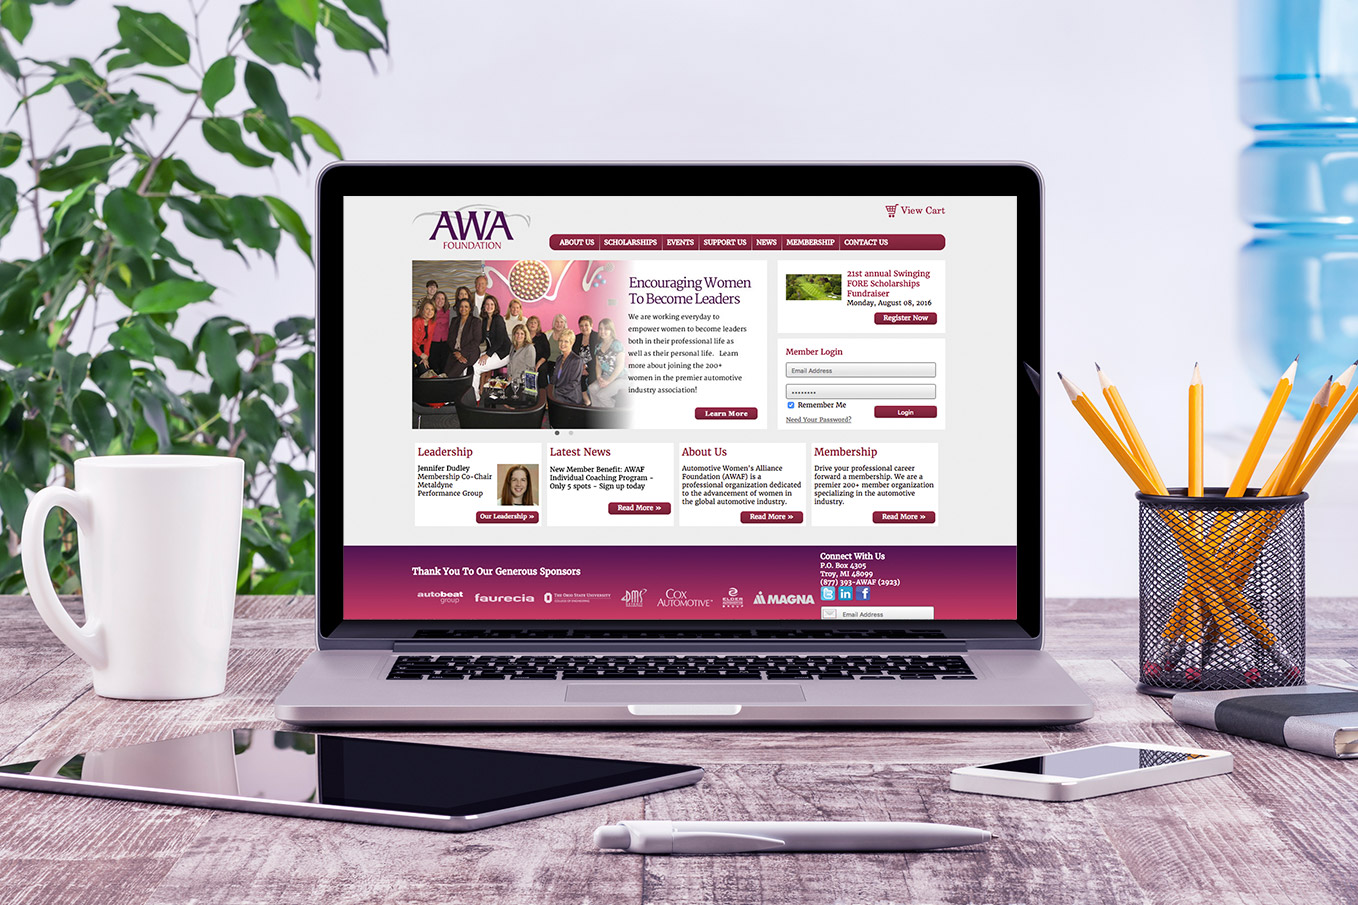 Image Of The Automotive Women's Alliance Foundation Digital Marketing Project